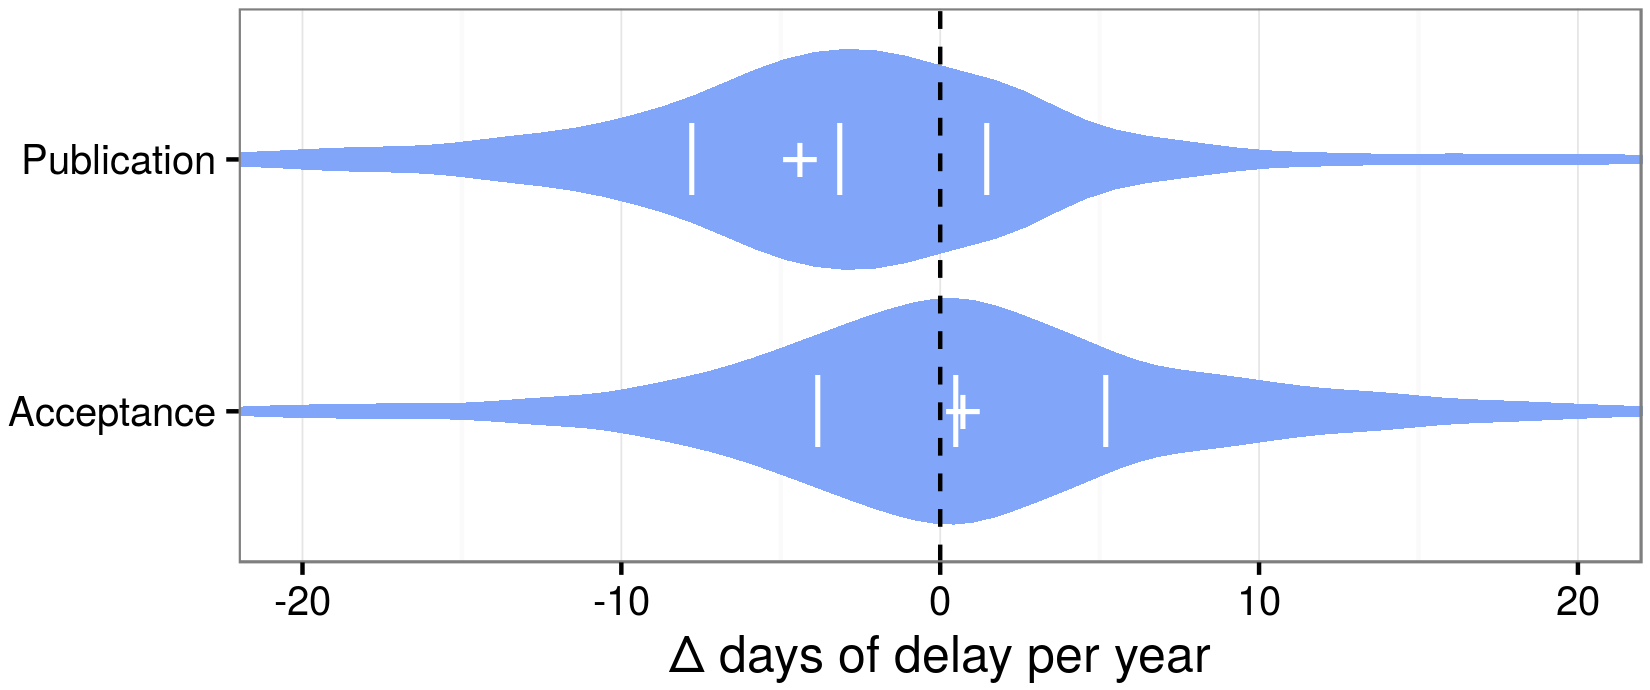 Journal-level delay trends